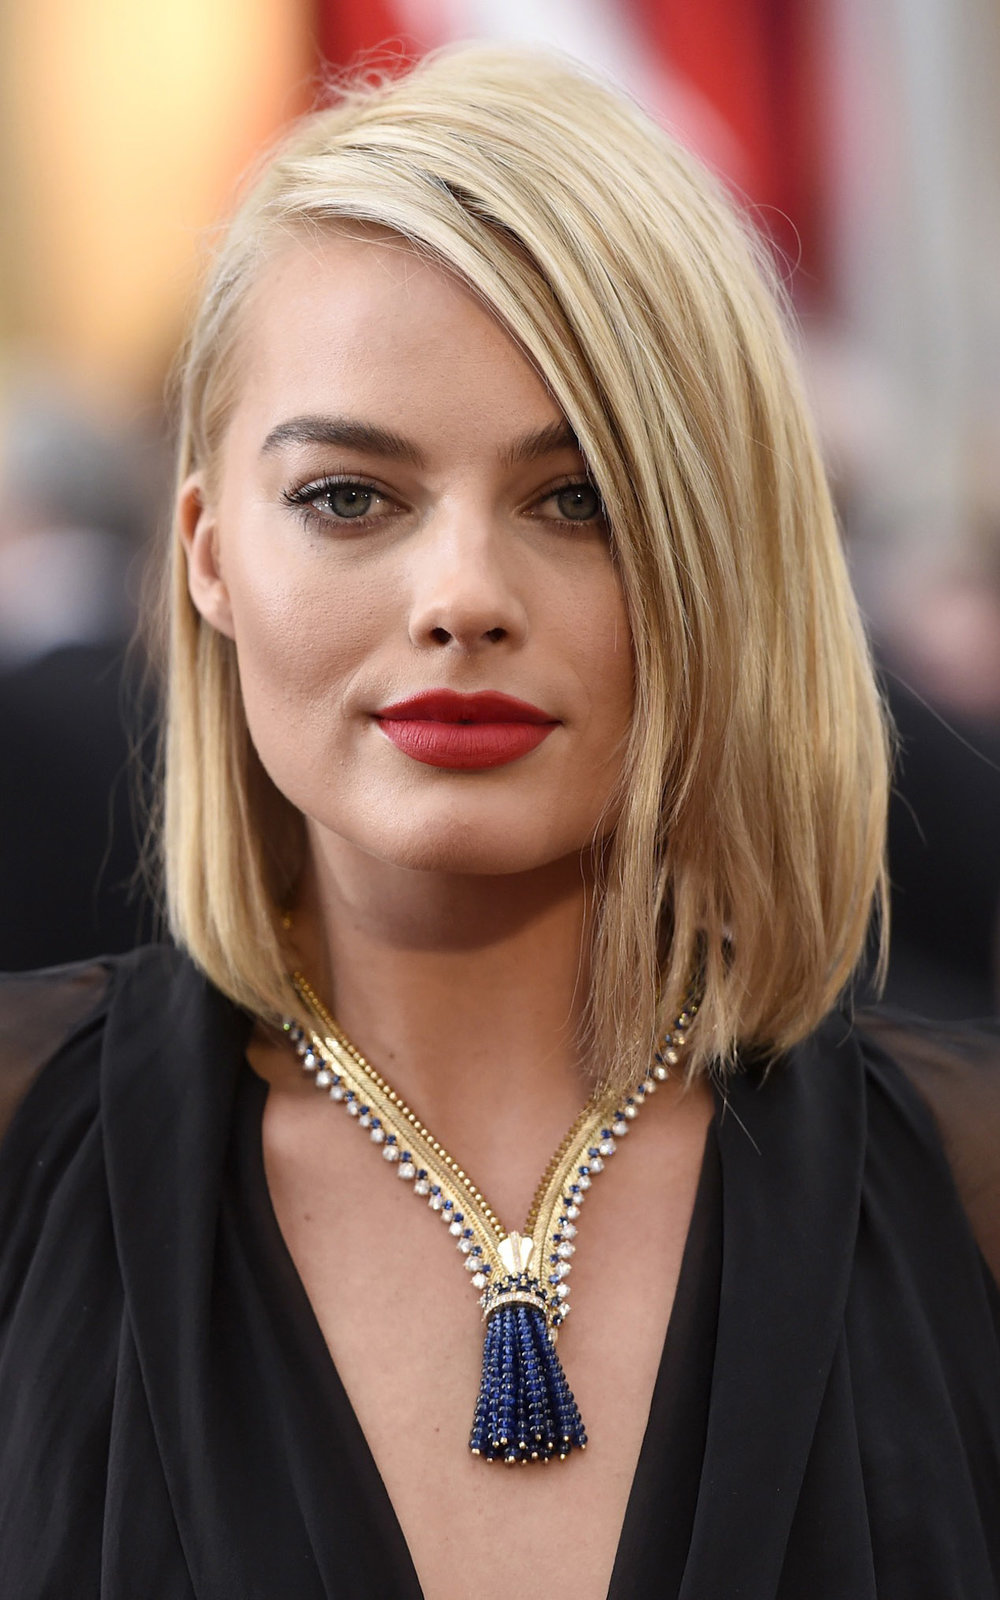 what-to-wear-square-face-shape-style-haircut-sunglasses-hat-earrings-jewelry-margotrobbie-oscars-lob-blonde.jpg